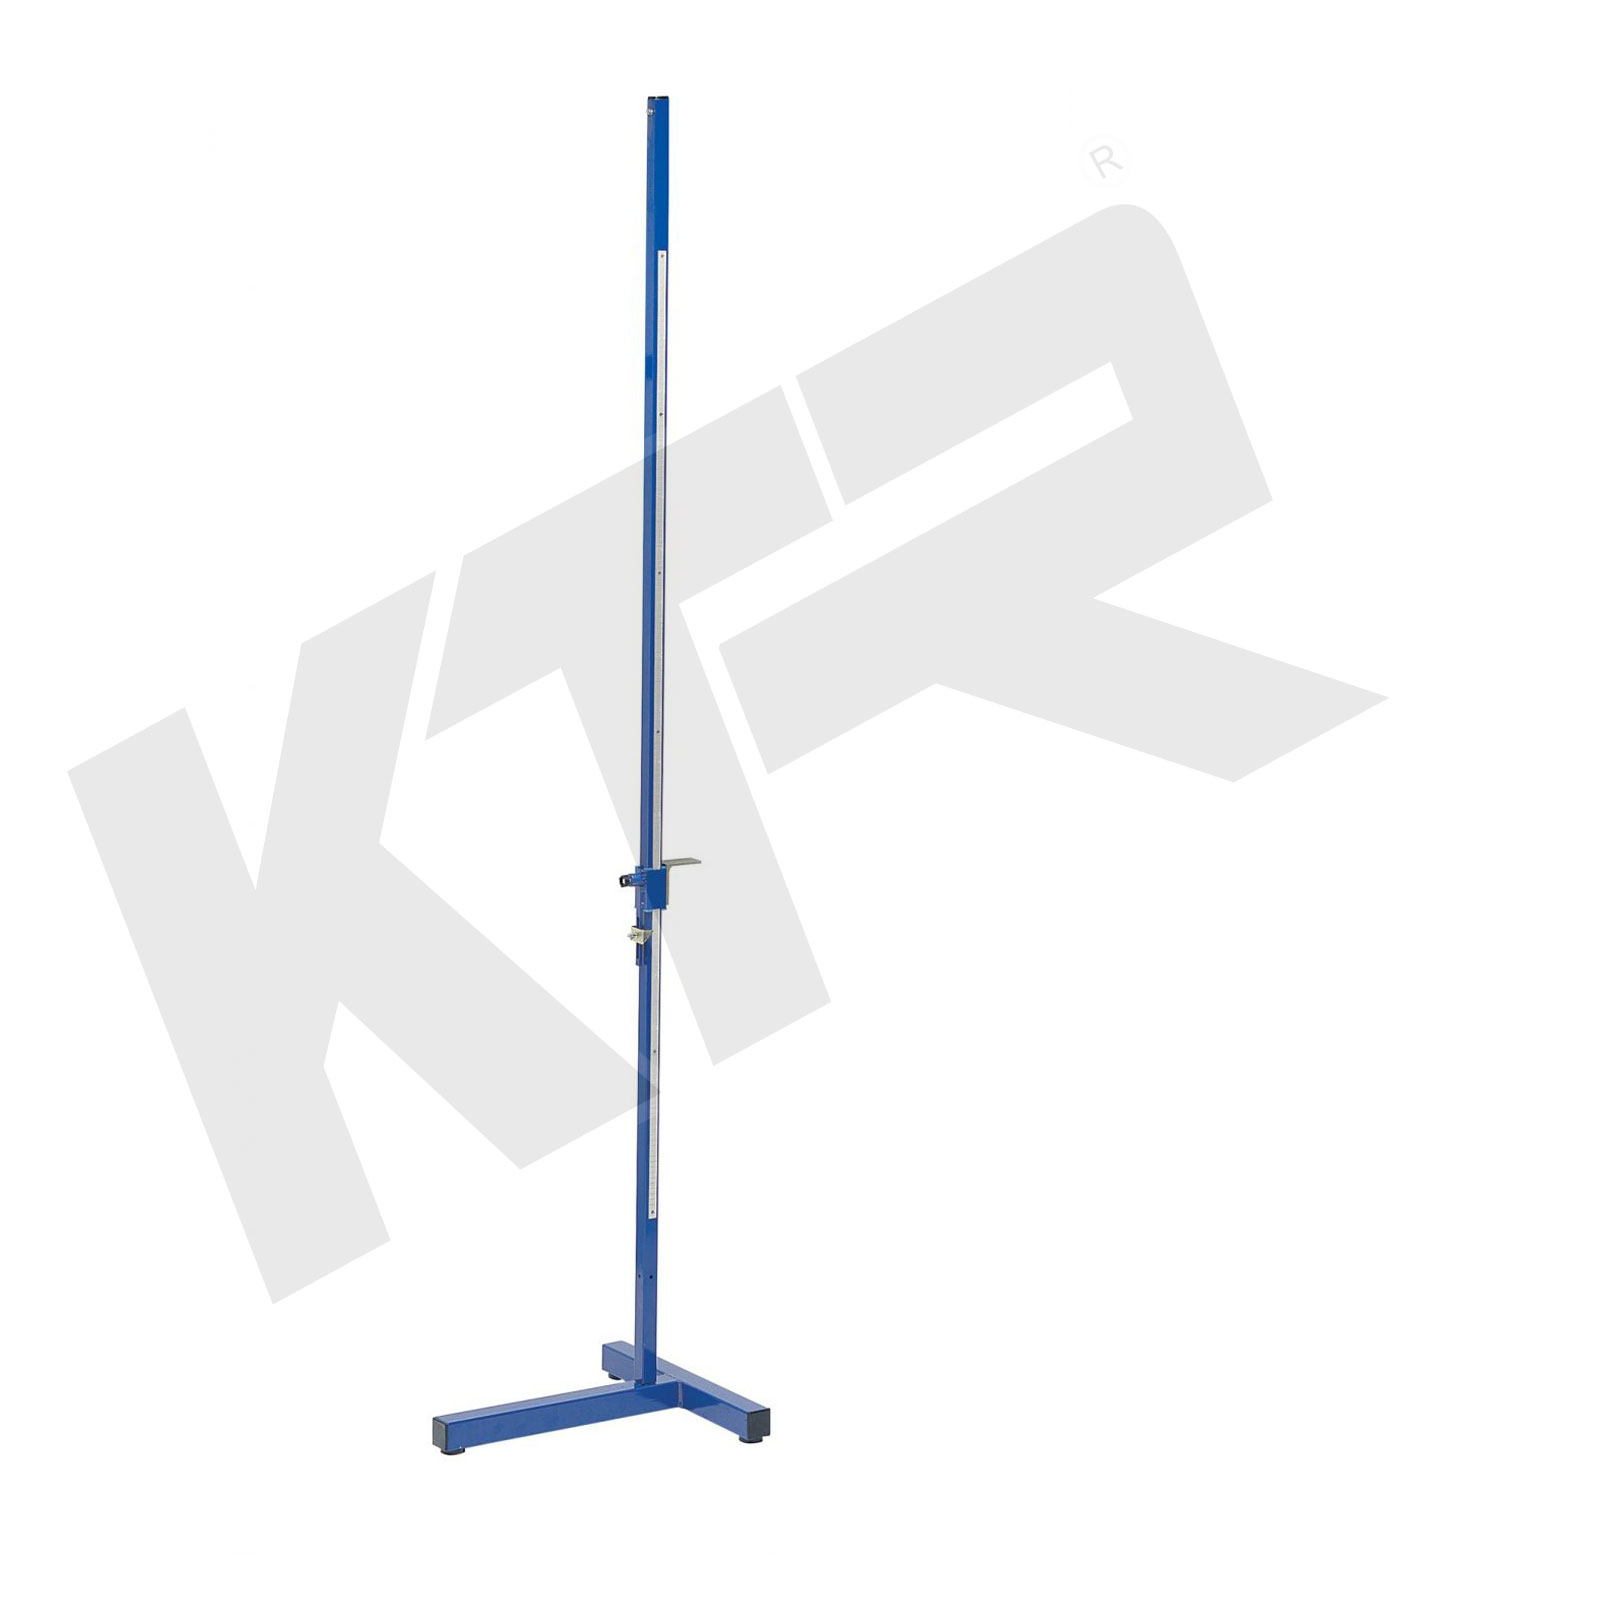 KTR Metco High Jump Stand